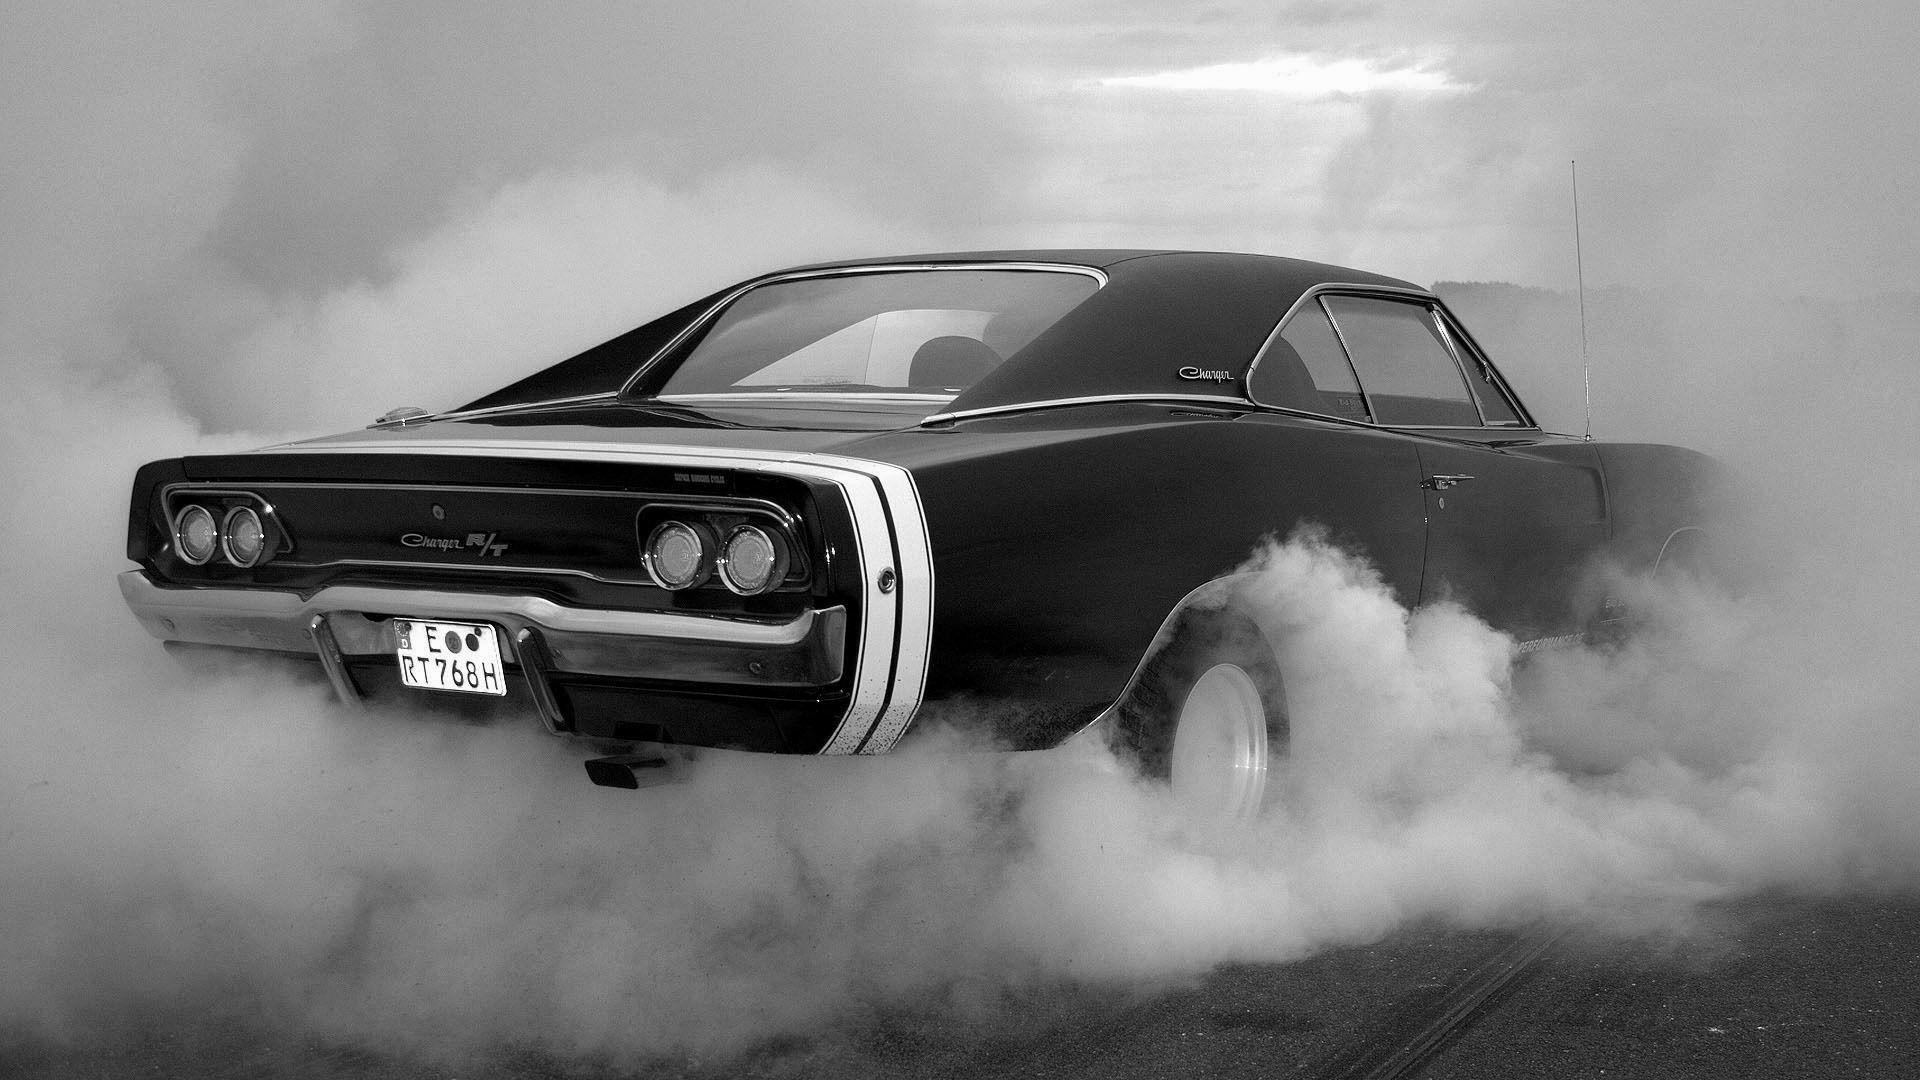 1920x1080 wallpaper.wiki-1970-Dodge-Charger-Background-HD-PIC-